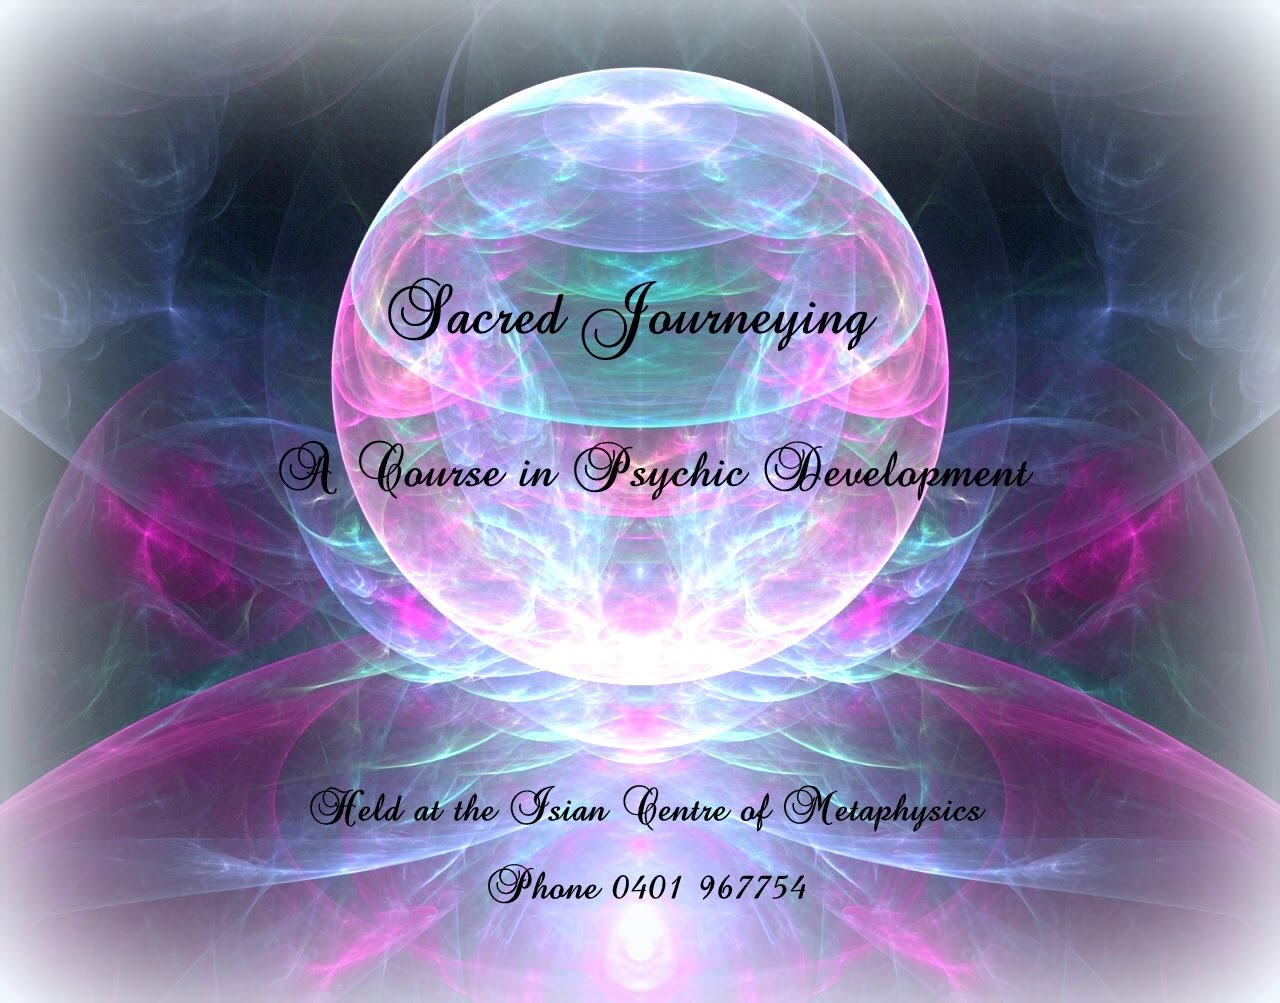 Psychic Development Course